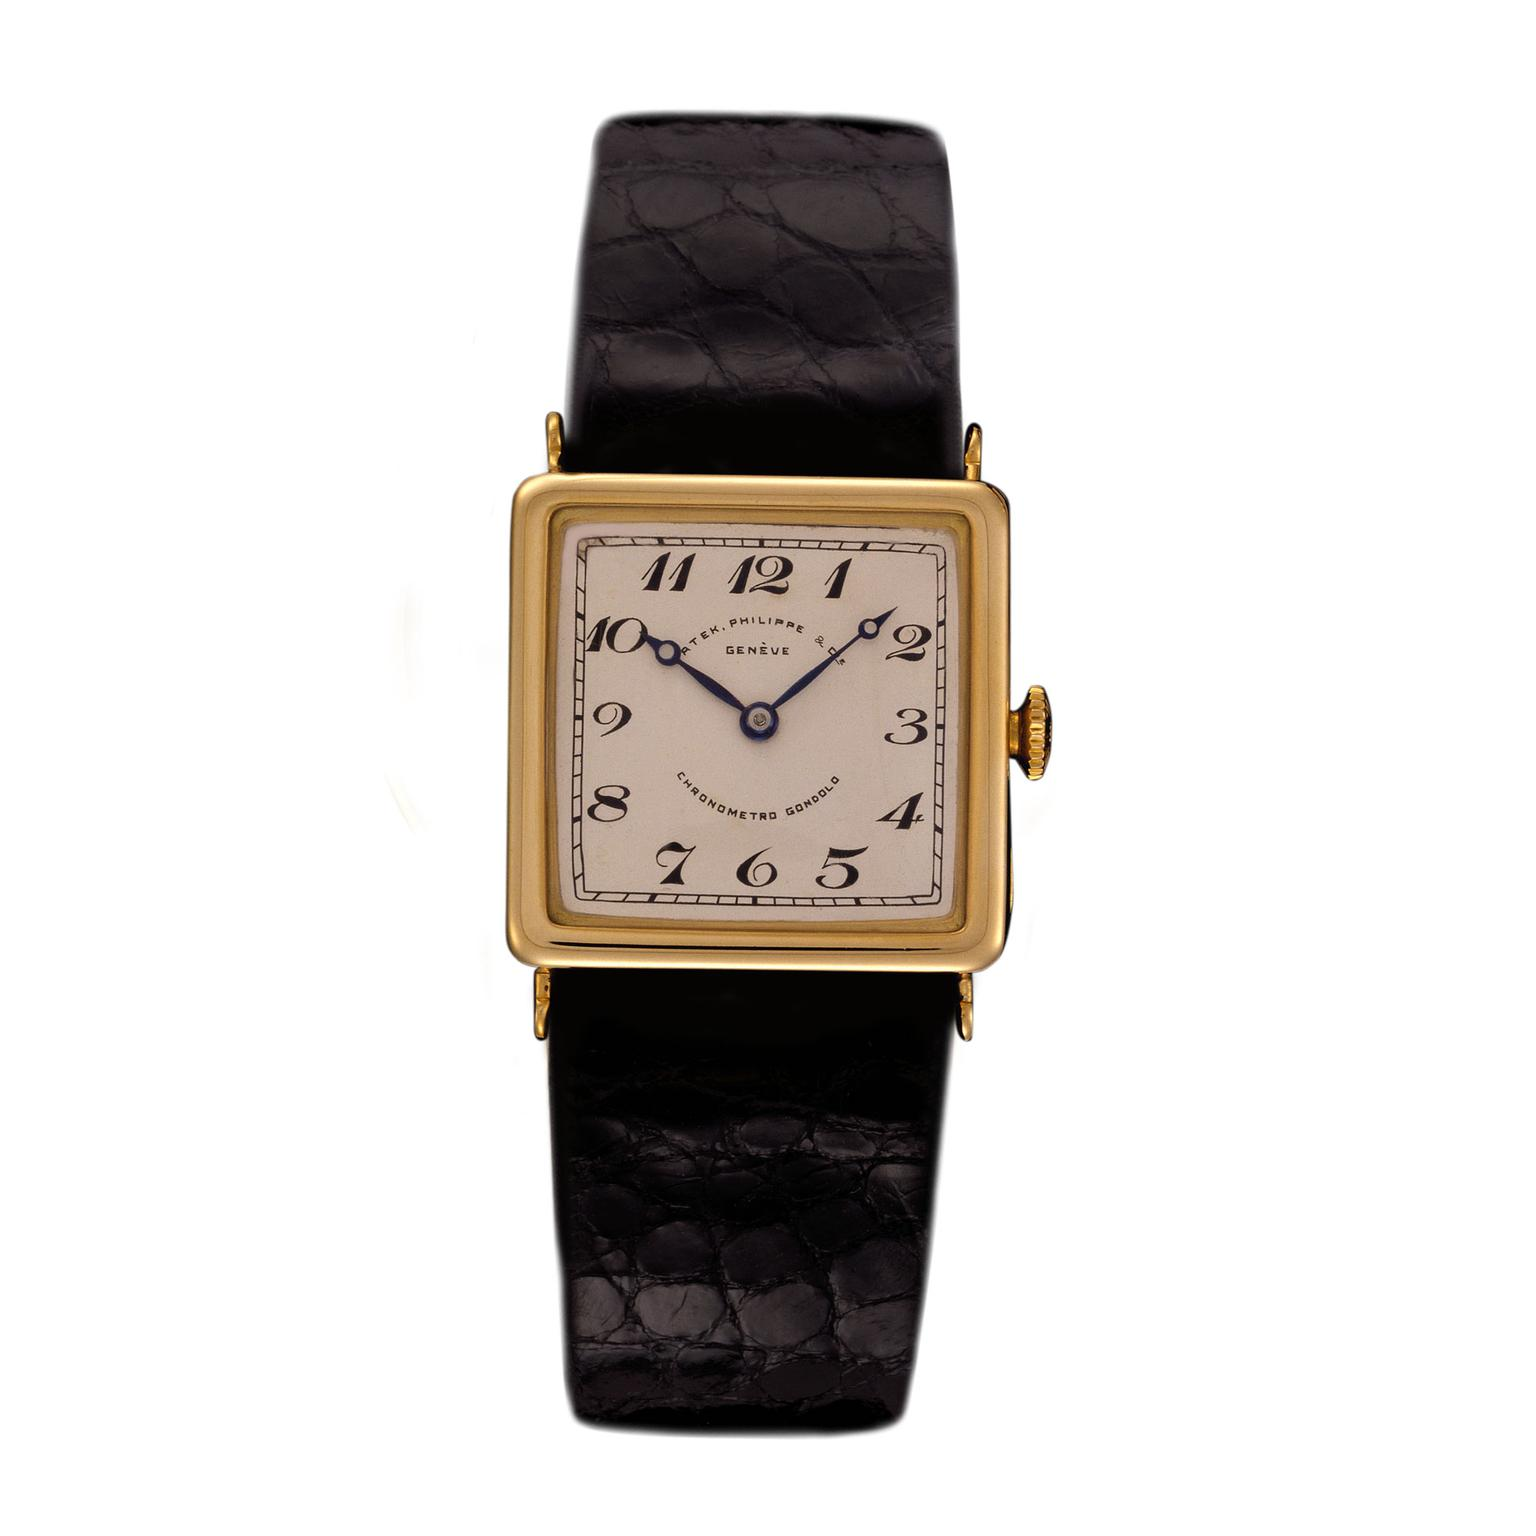 Patek Philippe Square Gondolo watch